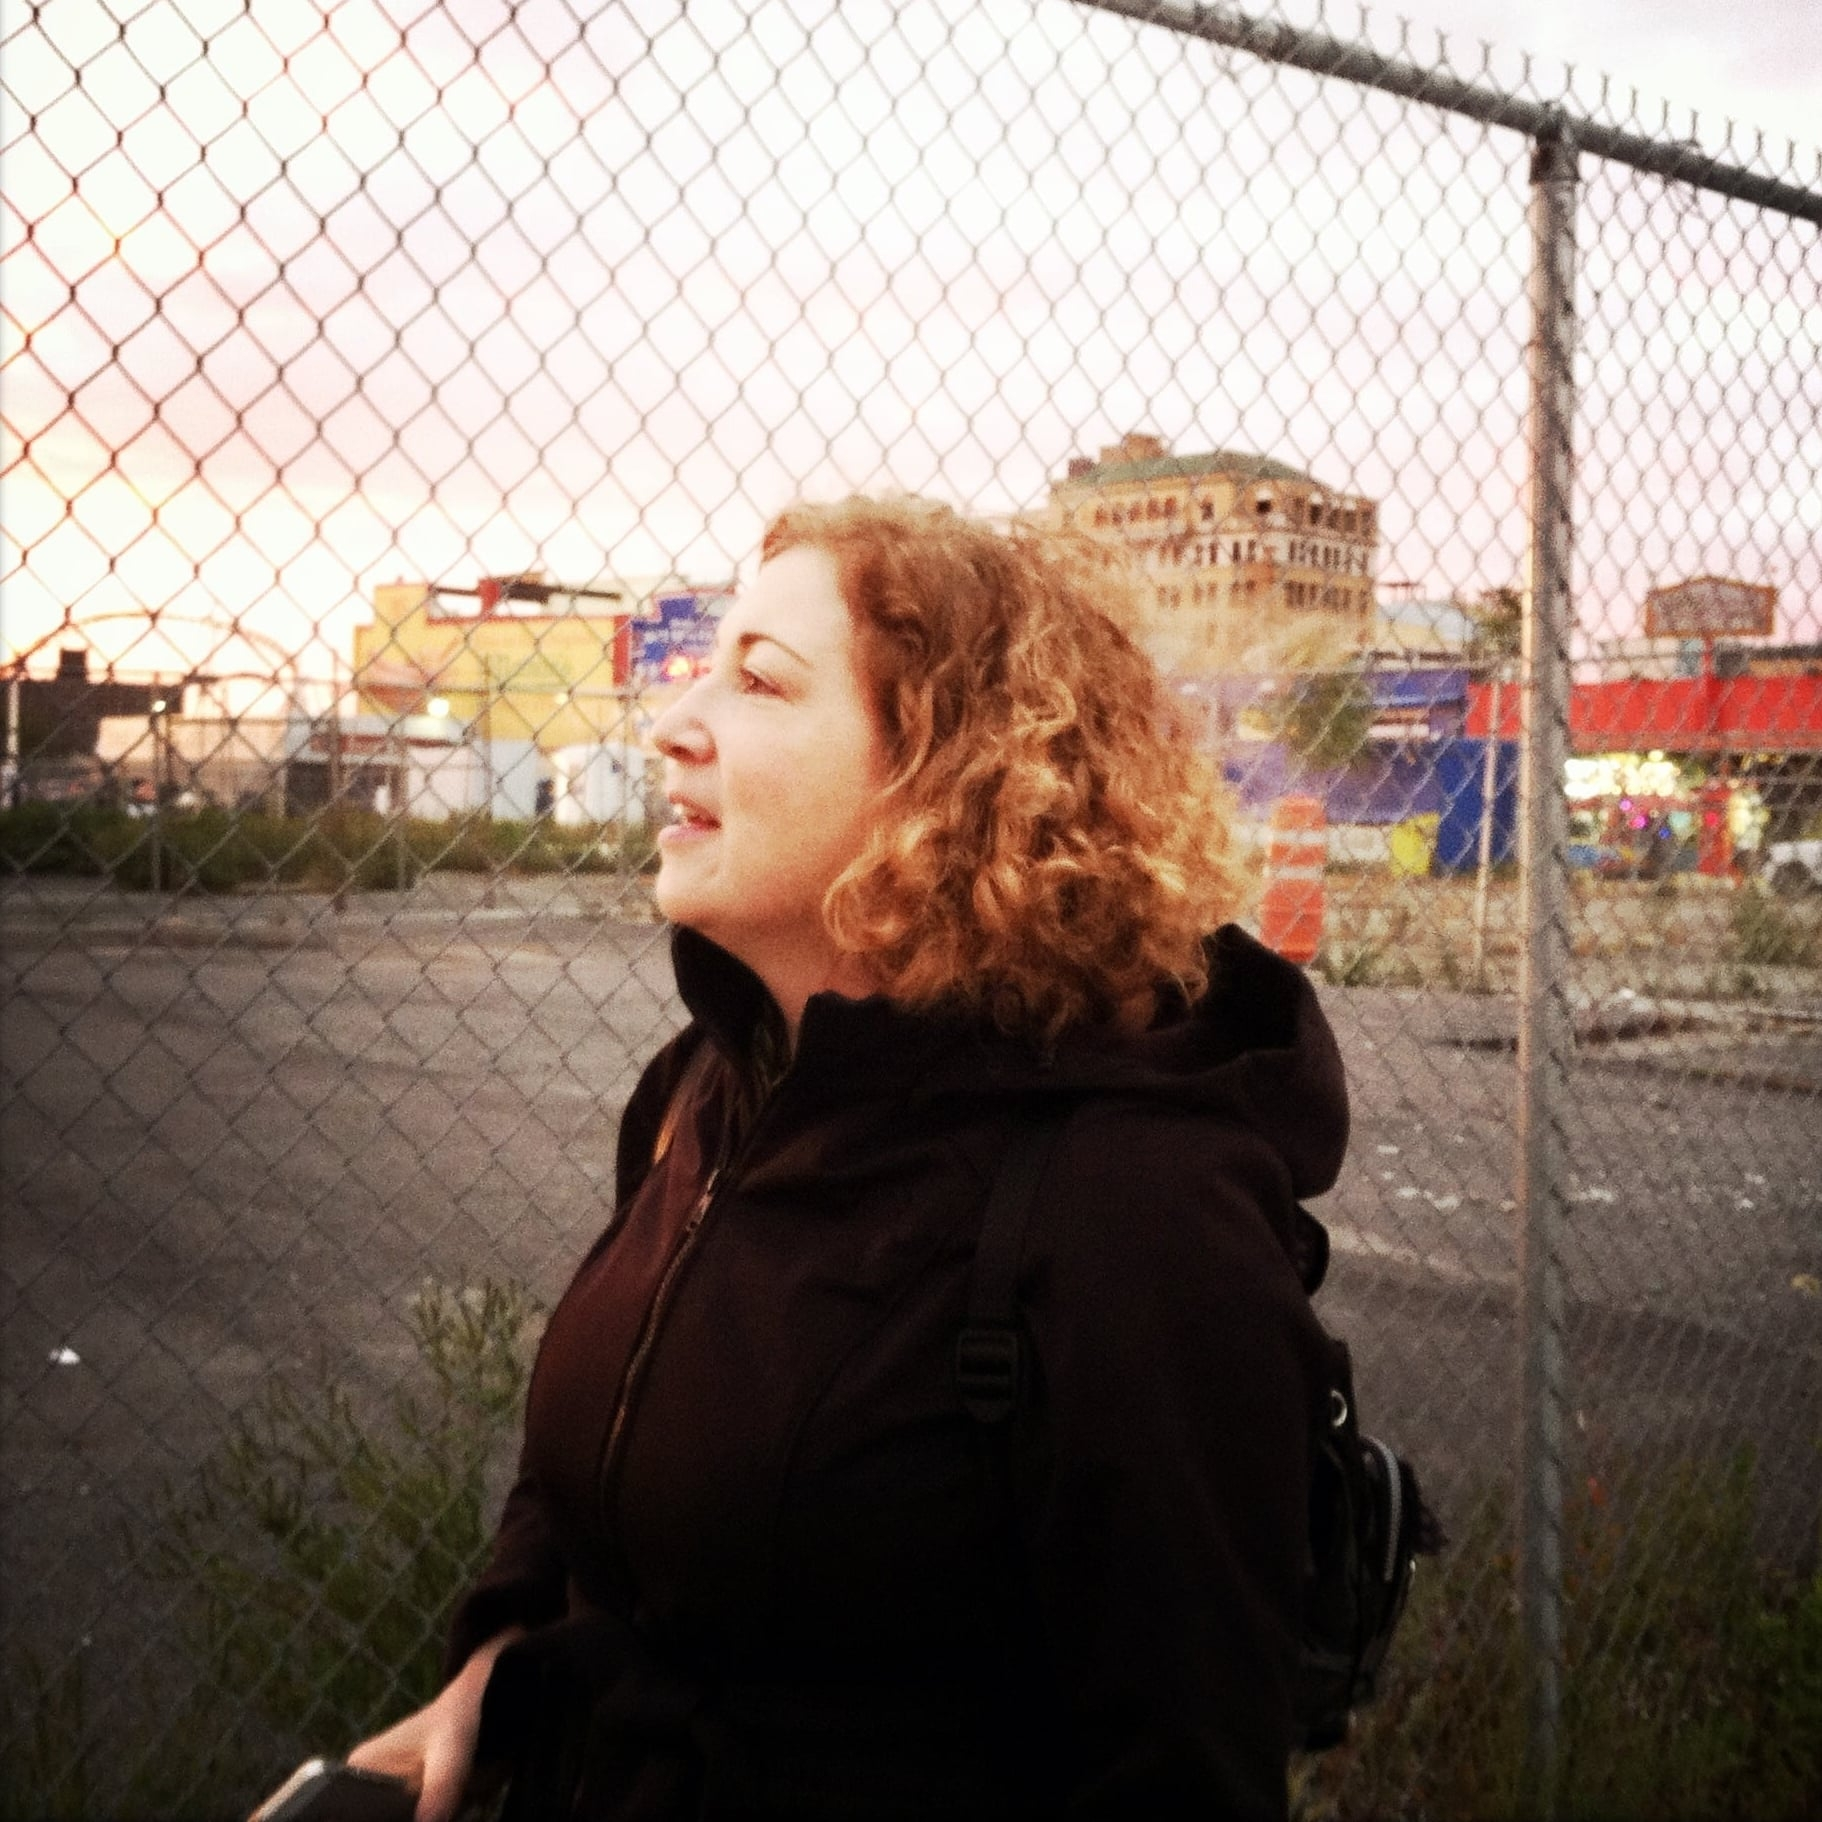 Sky-gazing, Coney Island